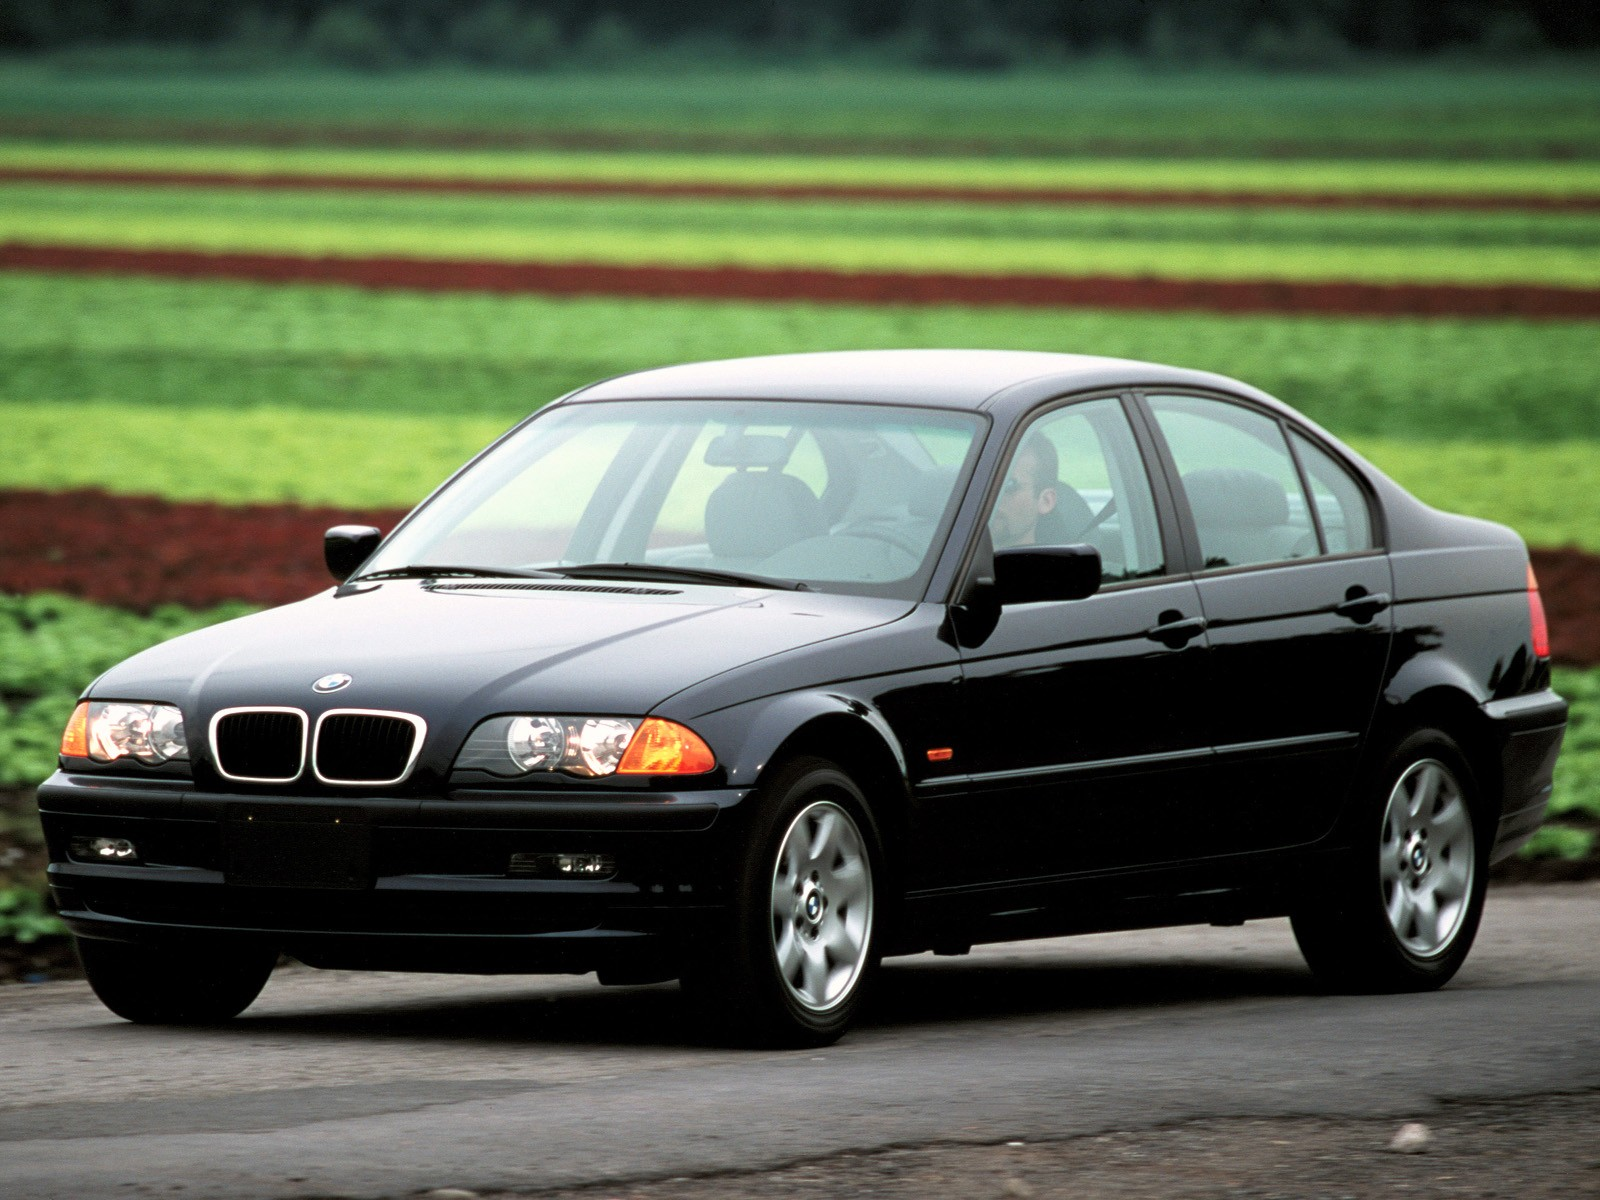 bmw 3 series e46 specs 1998 1999 2000 2001 2002. Black Bedroom Furniture Sets. Home Design Ideas